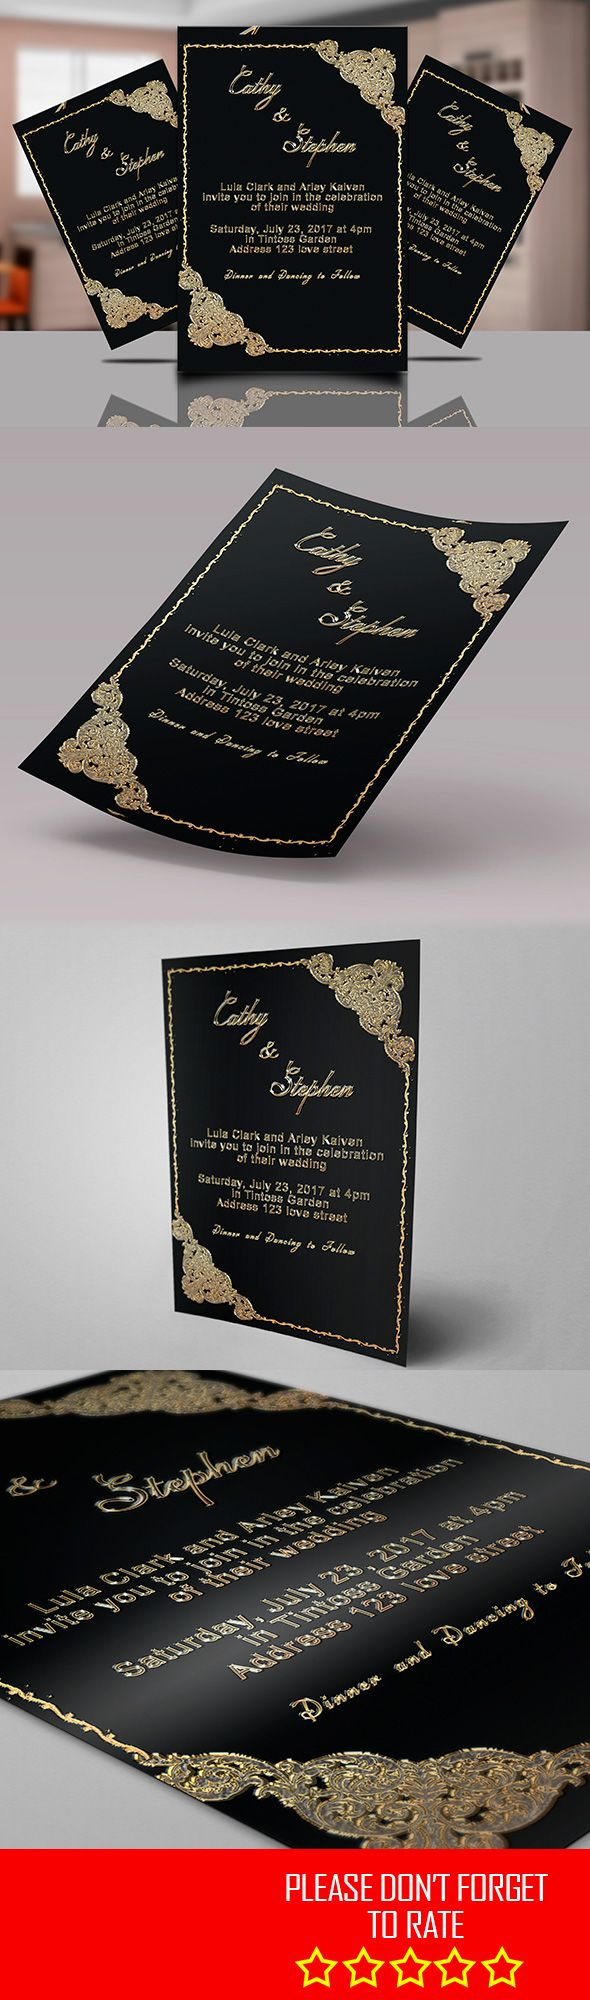 wedding card design software for android%0A WEDDING INVITATION FLYER TEMPLATE  All text editable easily  Format  x   inch   mm bleed